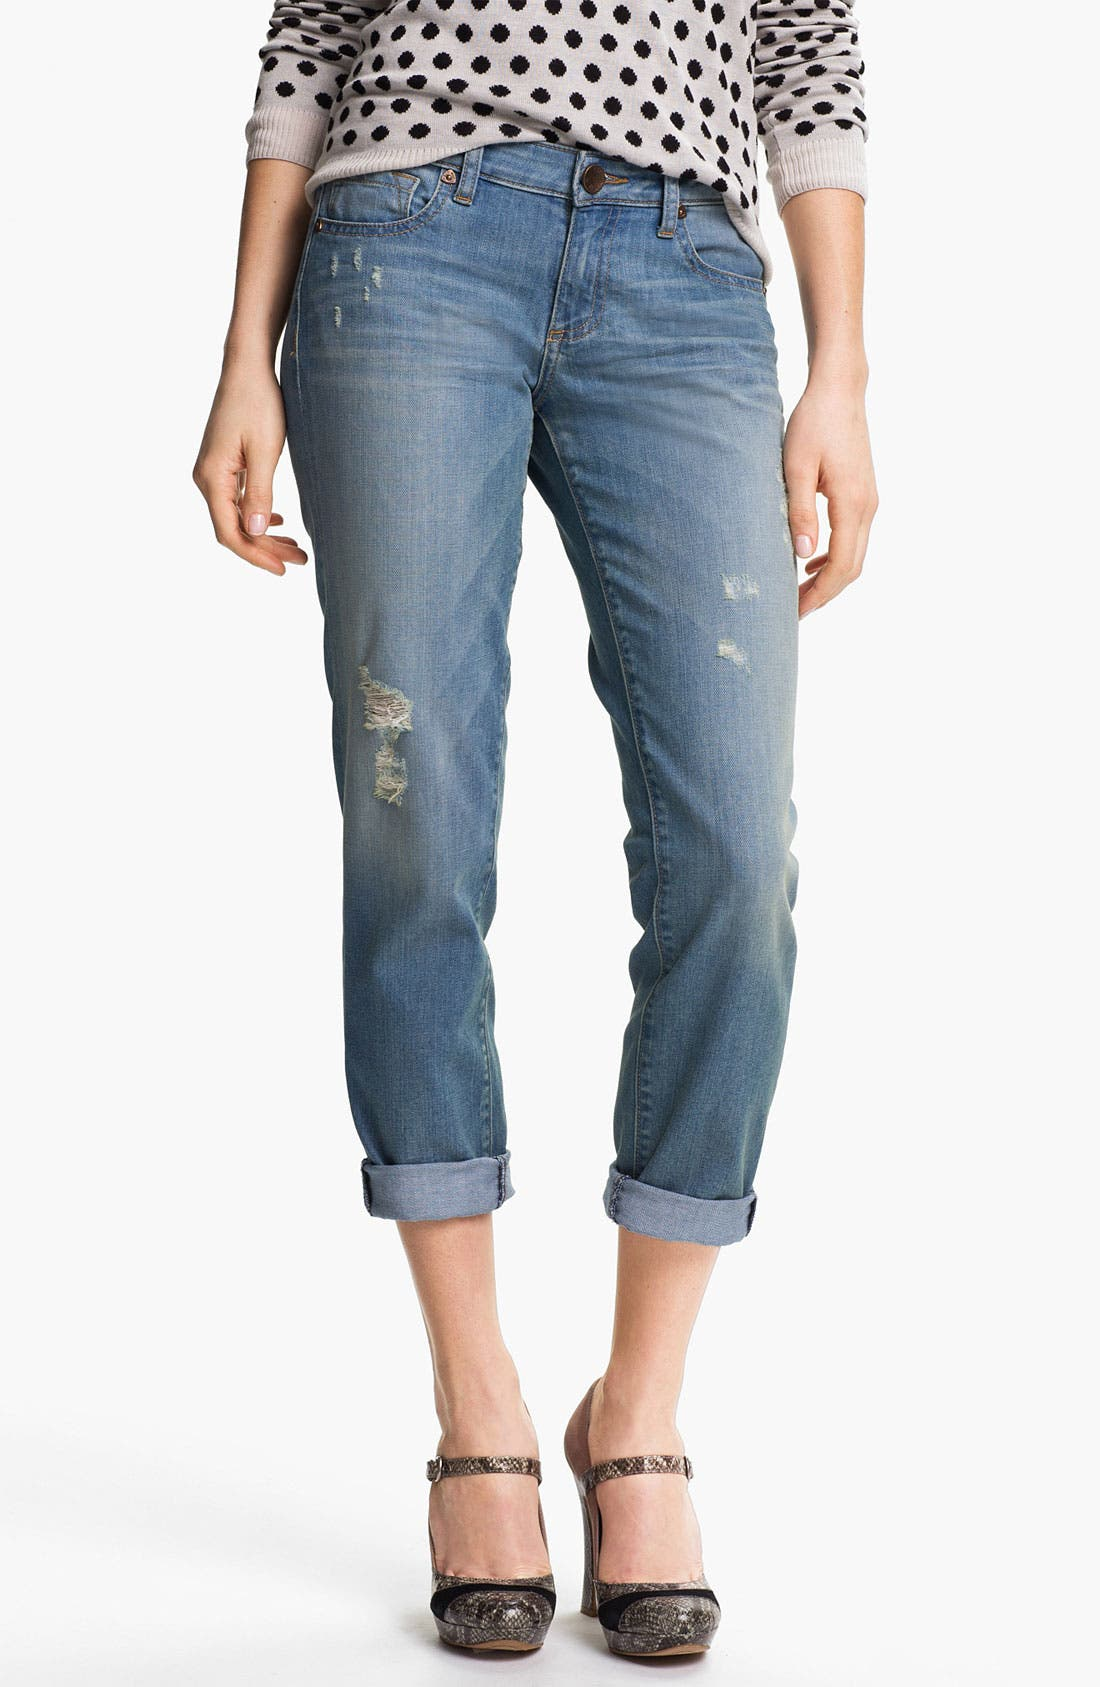 Alternate Image 1 Selected - KUT from the Kloth 'Ingrid' Boyfriend Stretch Jeans